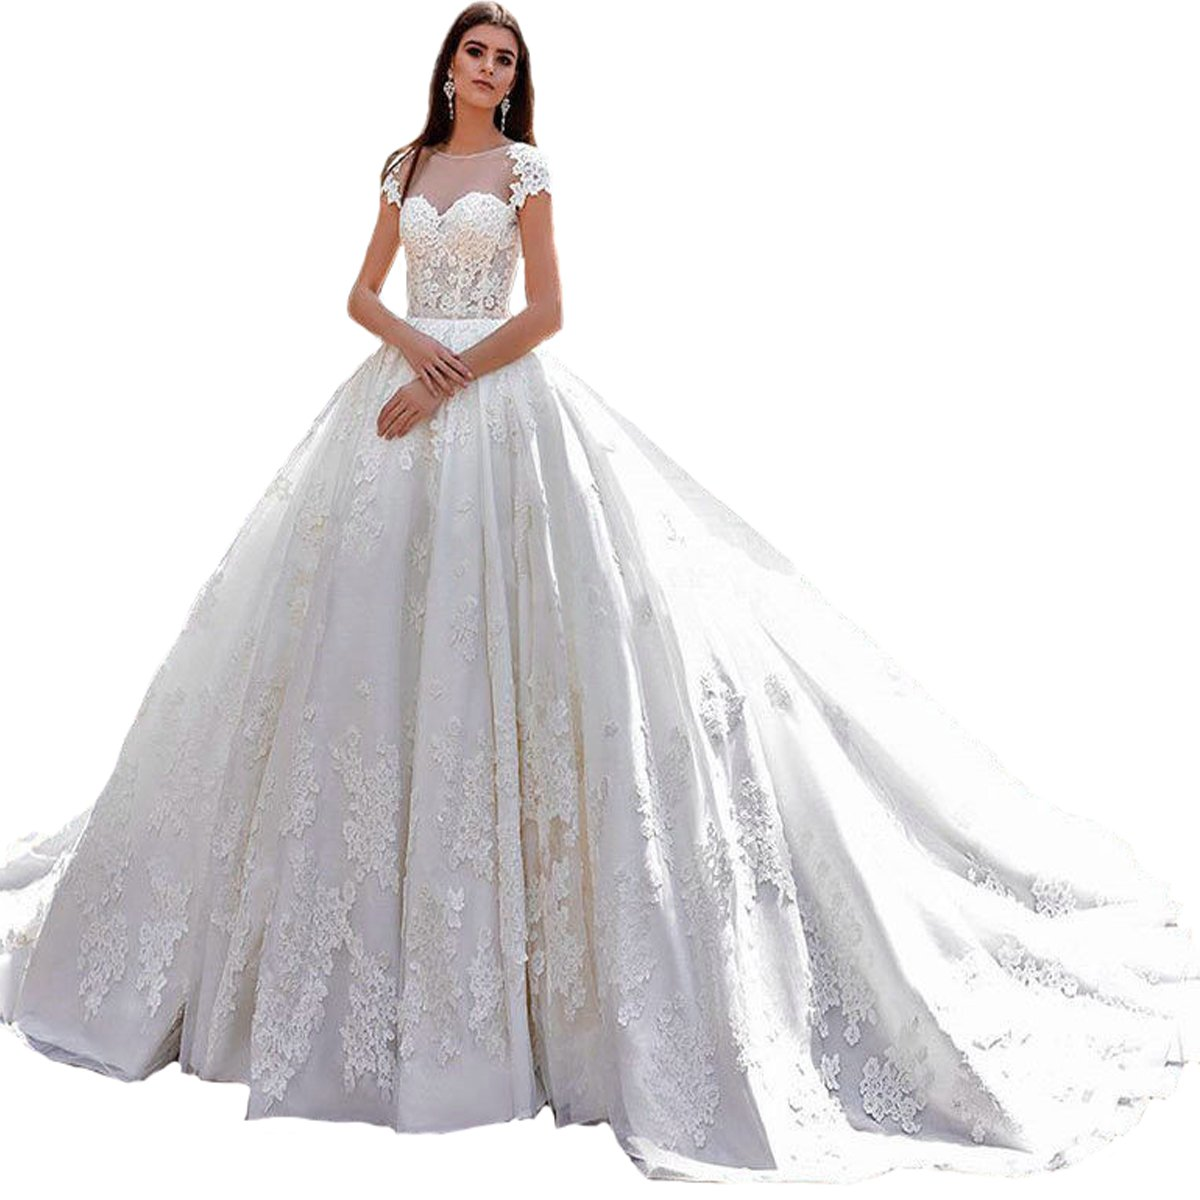 Yuxin Luxury Vintage Ball Gown Wedding Dresses For Bride Lace Cap